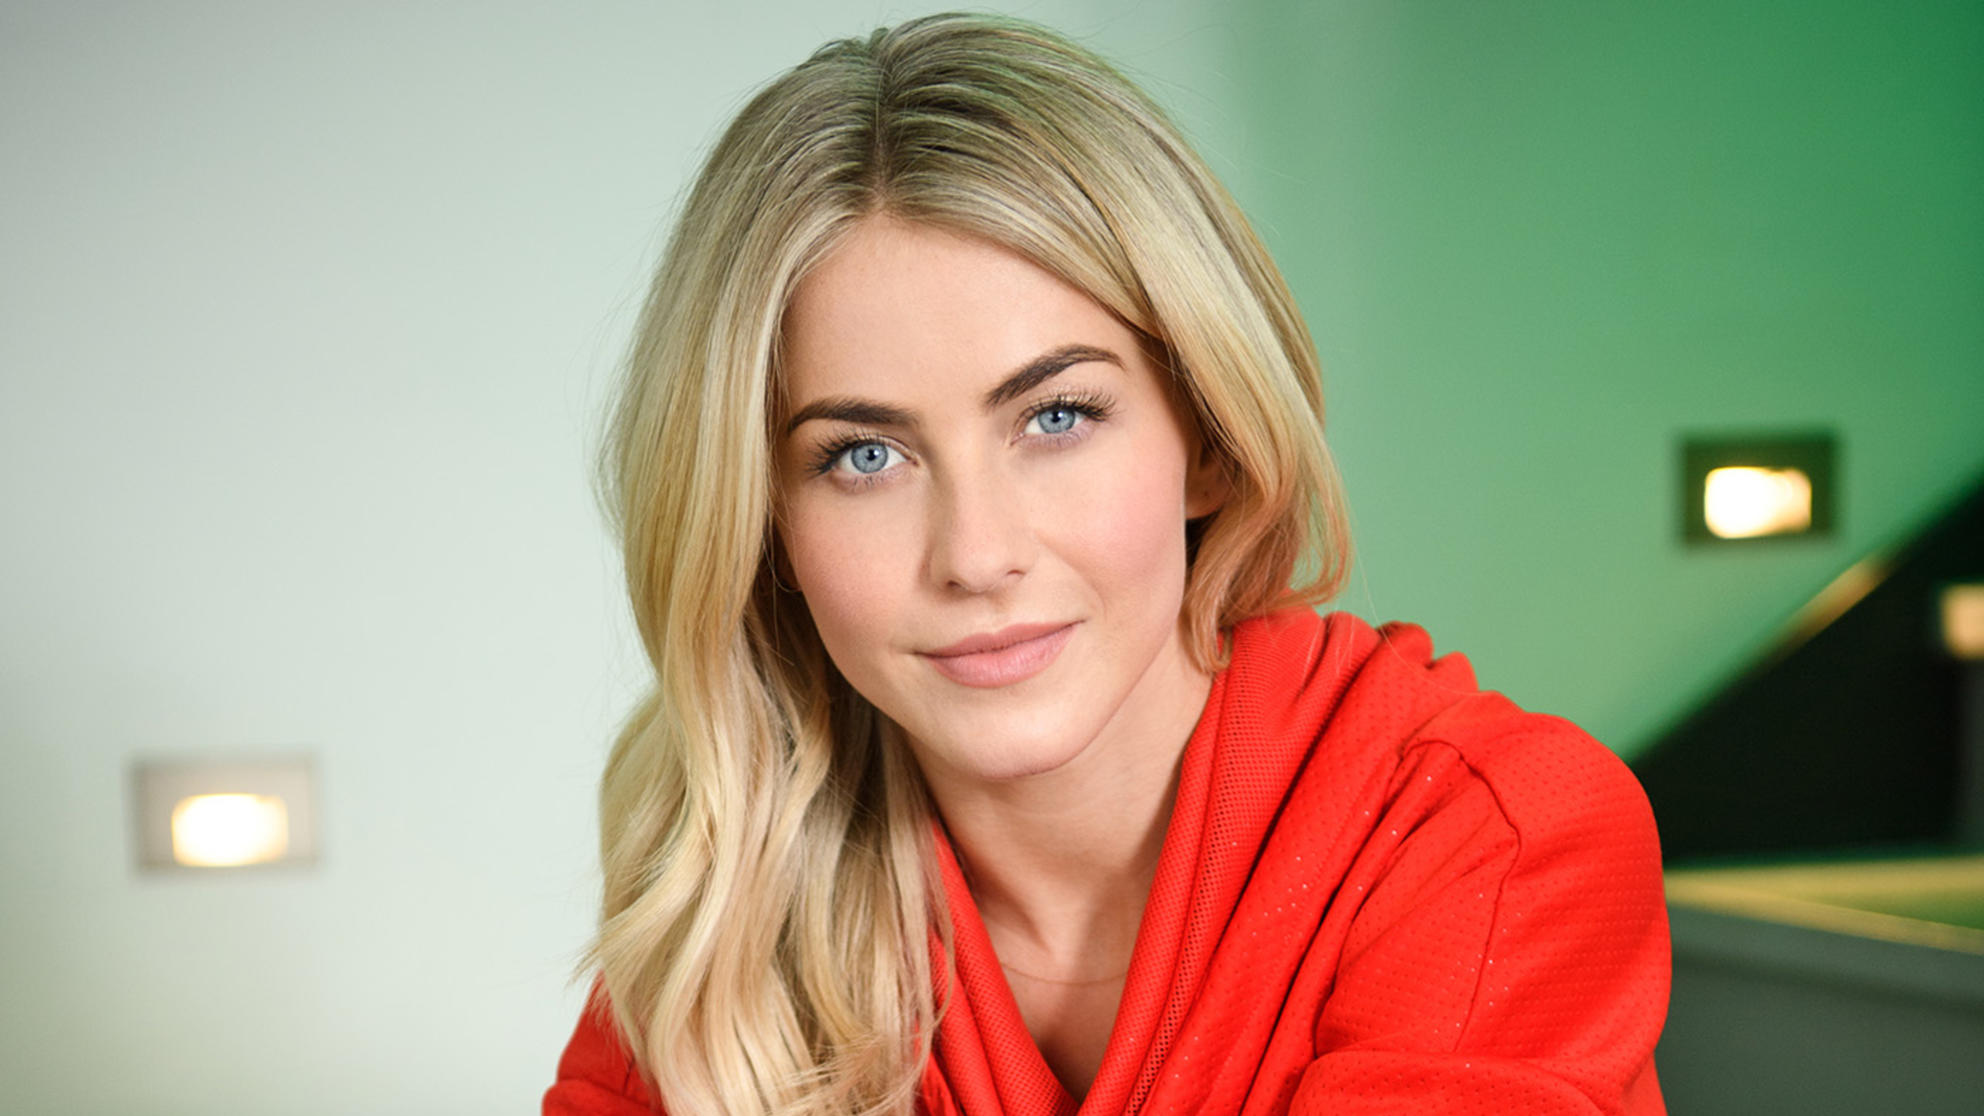 Julianne Hough Talks Married Life, the Morning Routine